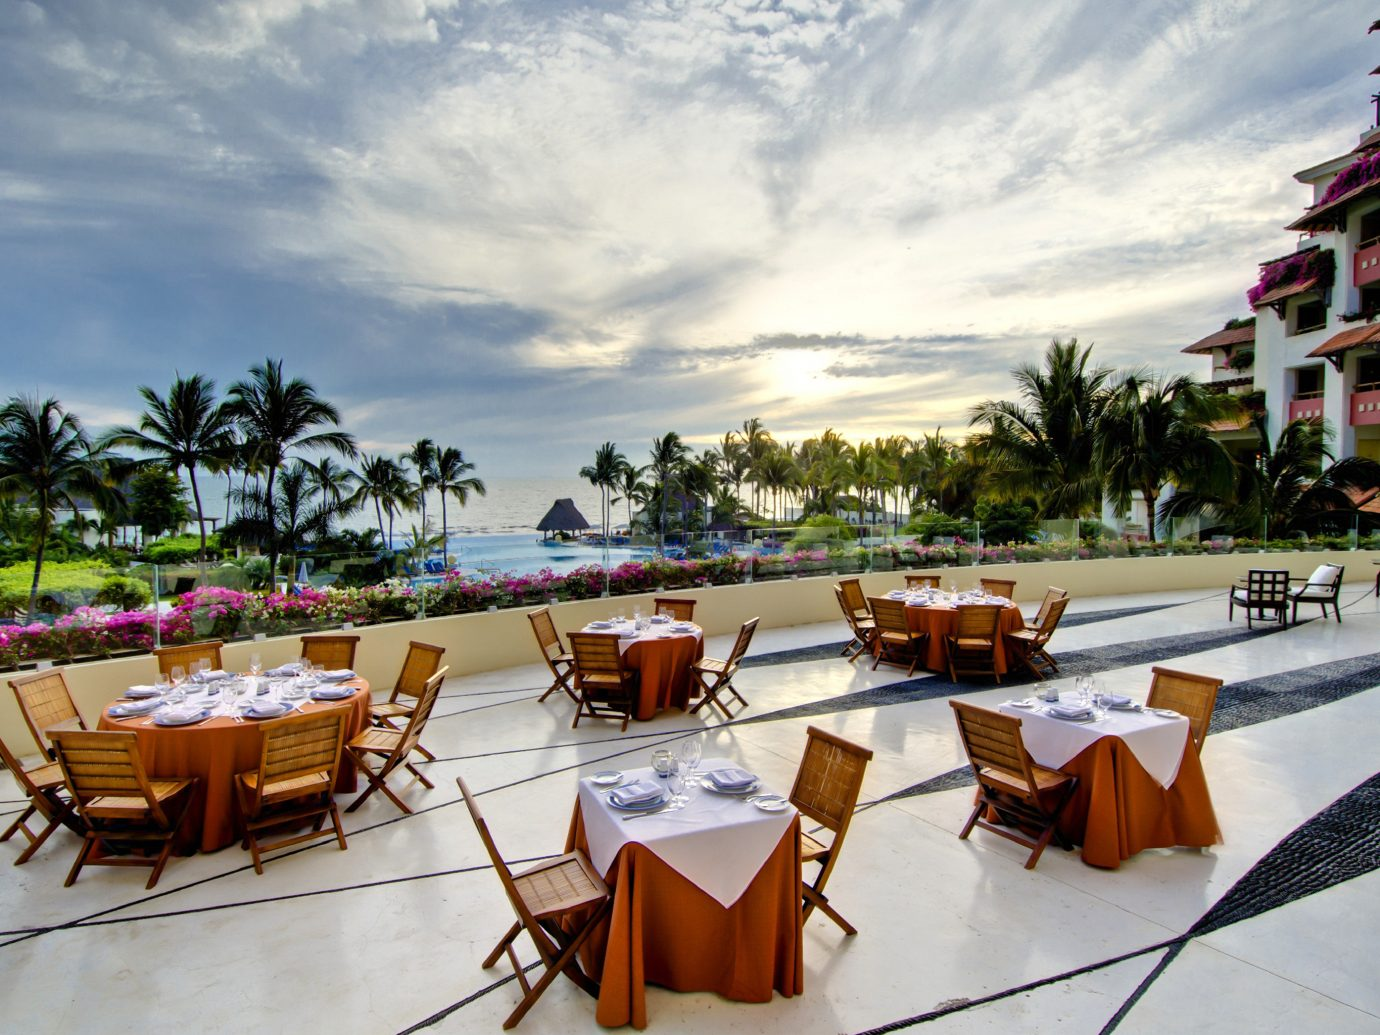 Balcony Beachfront Dining Drink Eat Hotels Outdoors Romance Romantic sky outdoor leisure chair vacation Resort Beach restaurant estate furniture